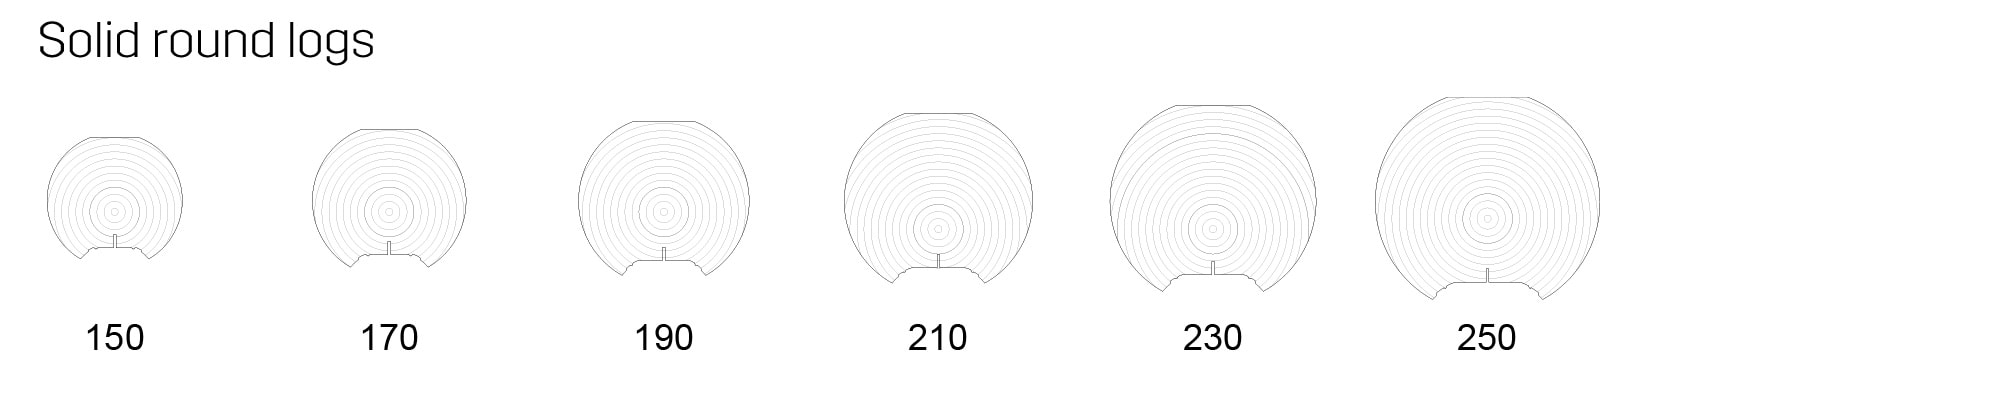 Solid round logs